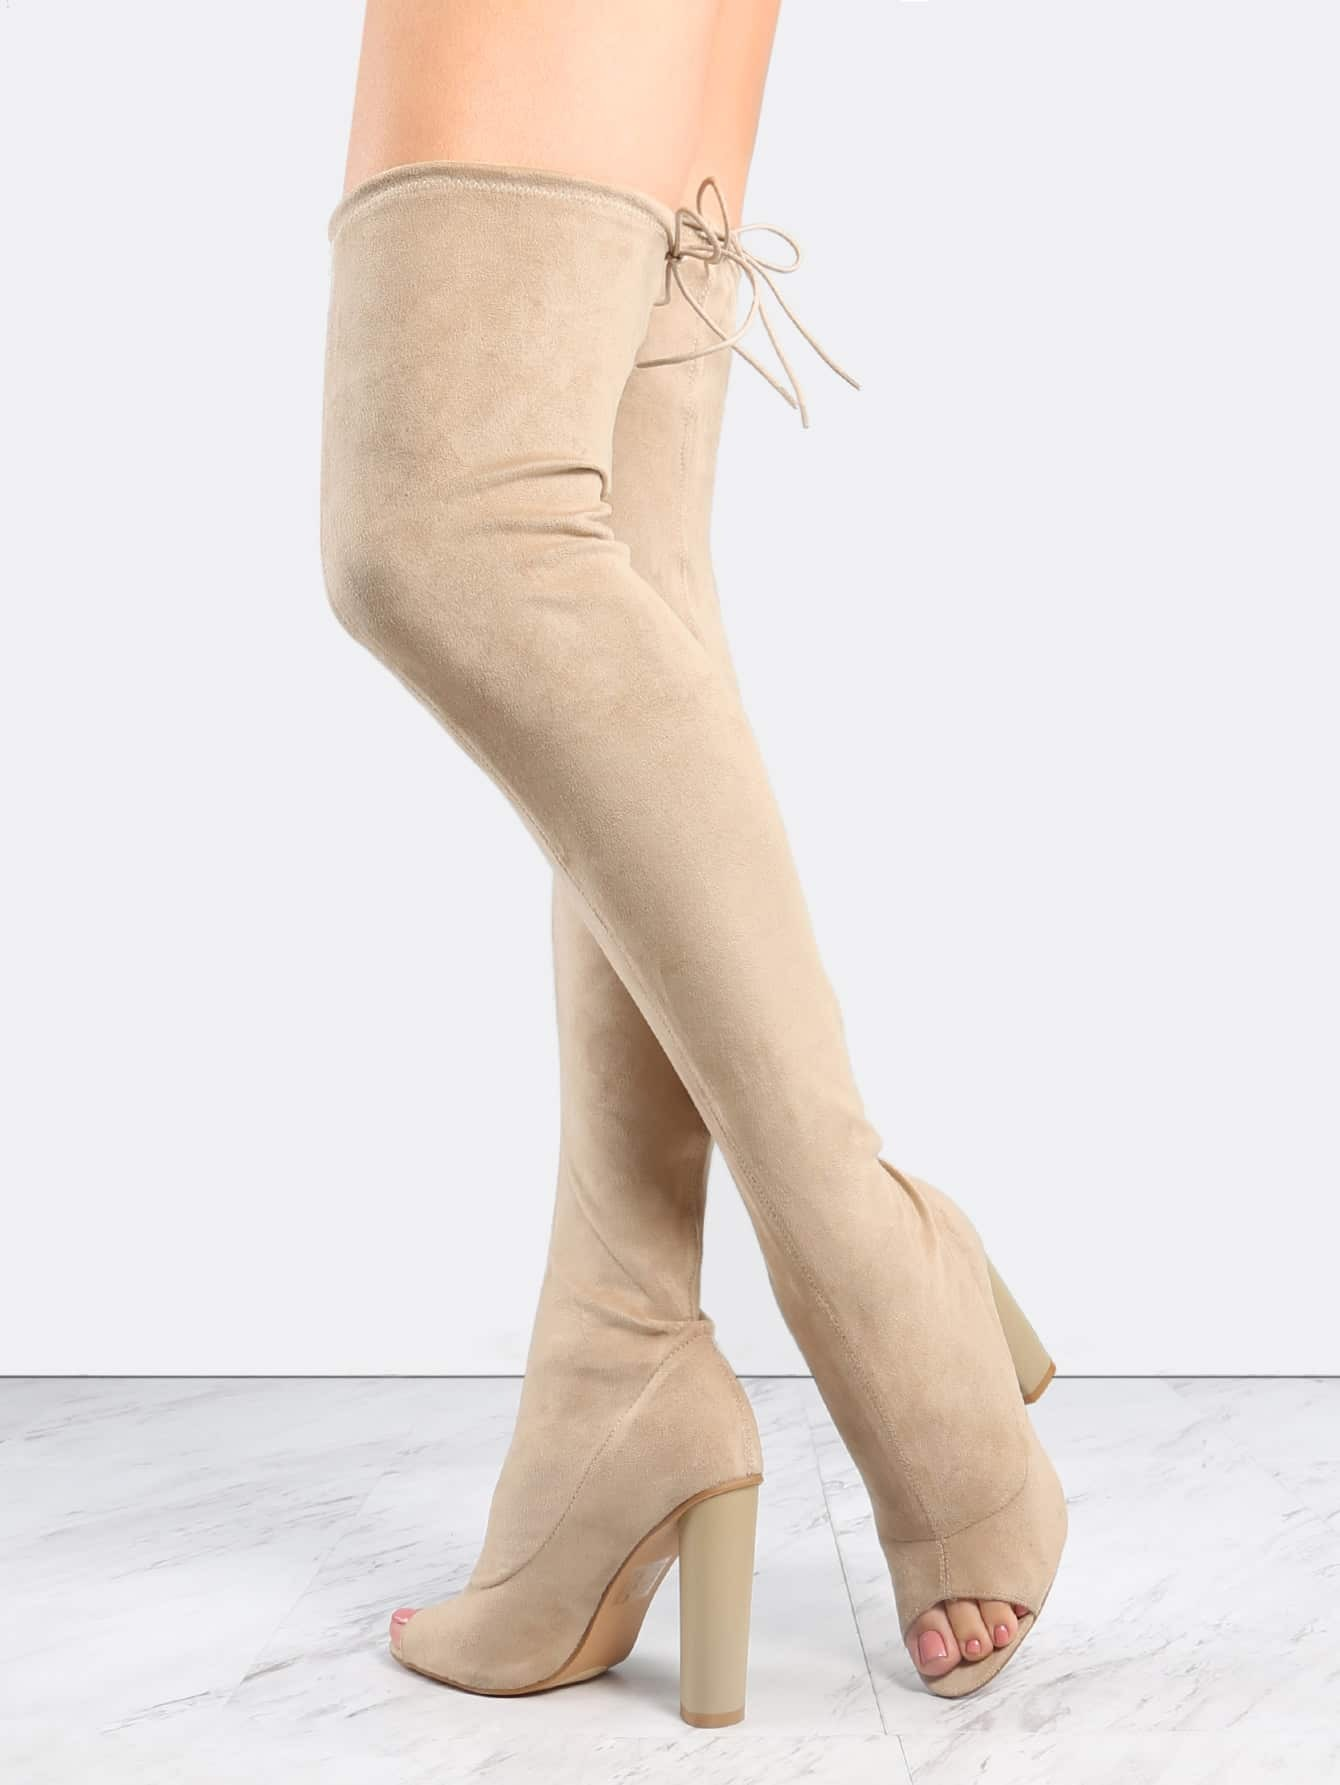 Nude Suede Peep Toe Chunky Heel Over The Knee Boots mmcboot-kate2m-nude